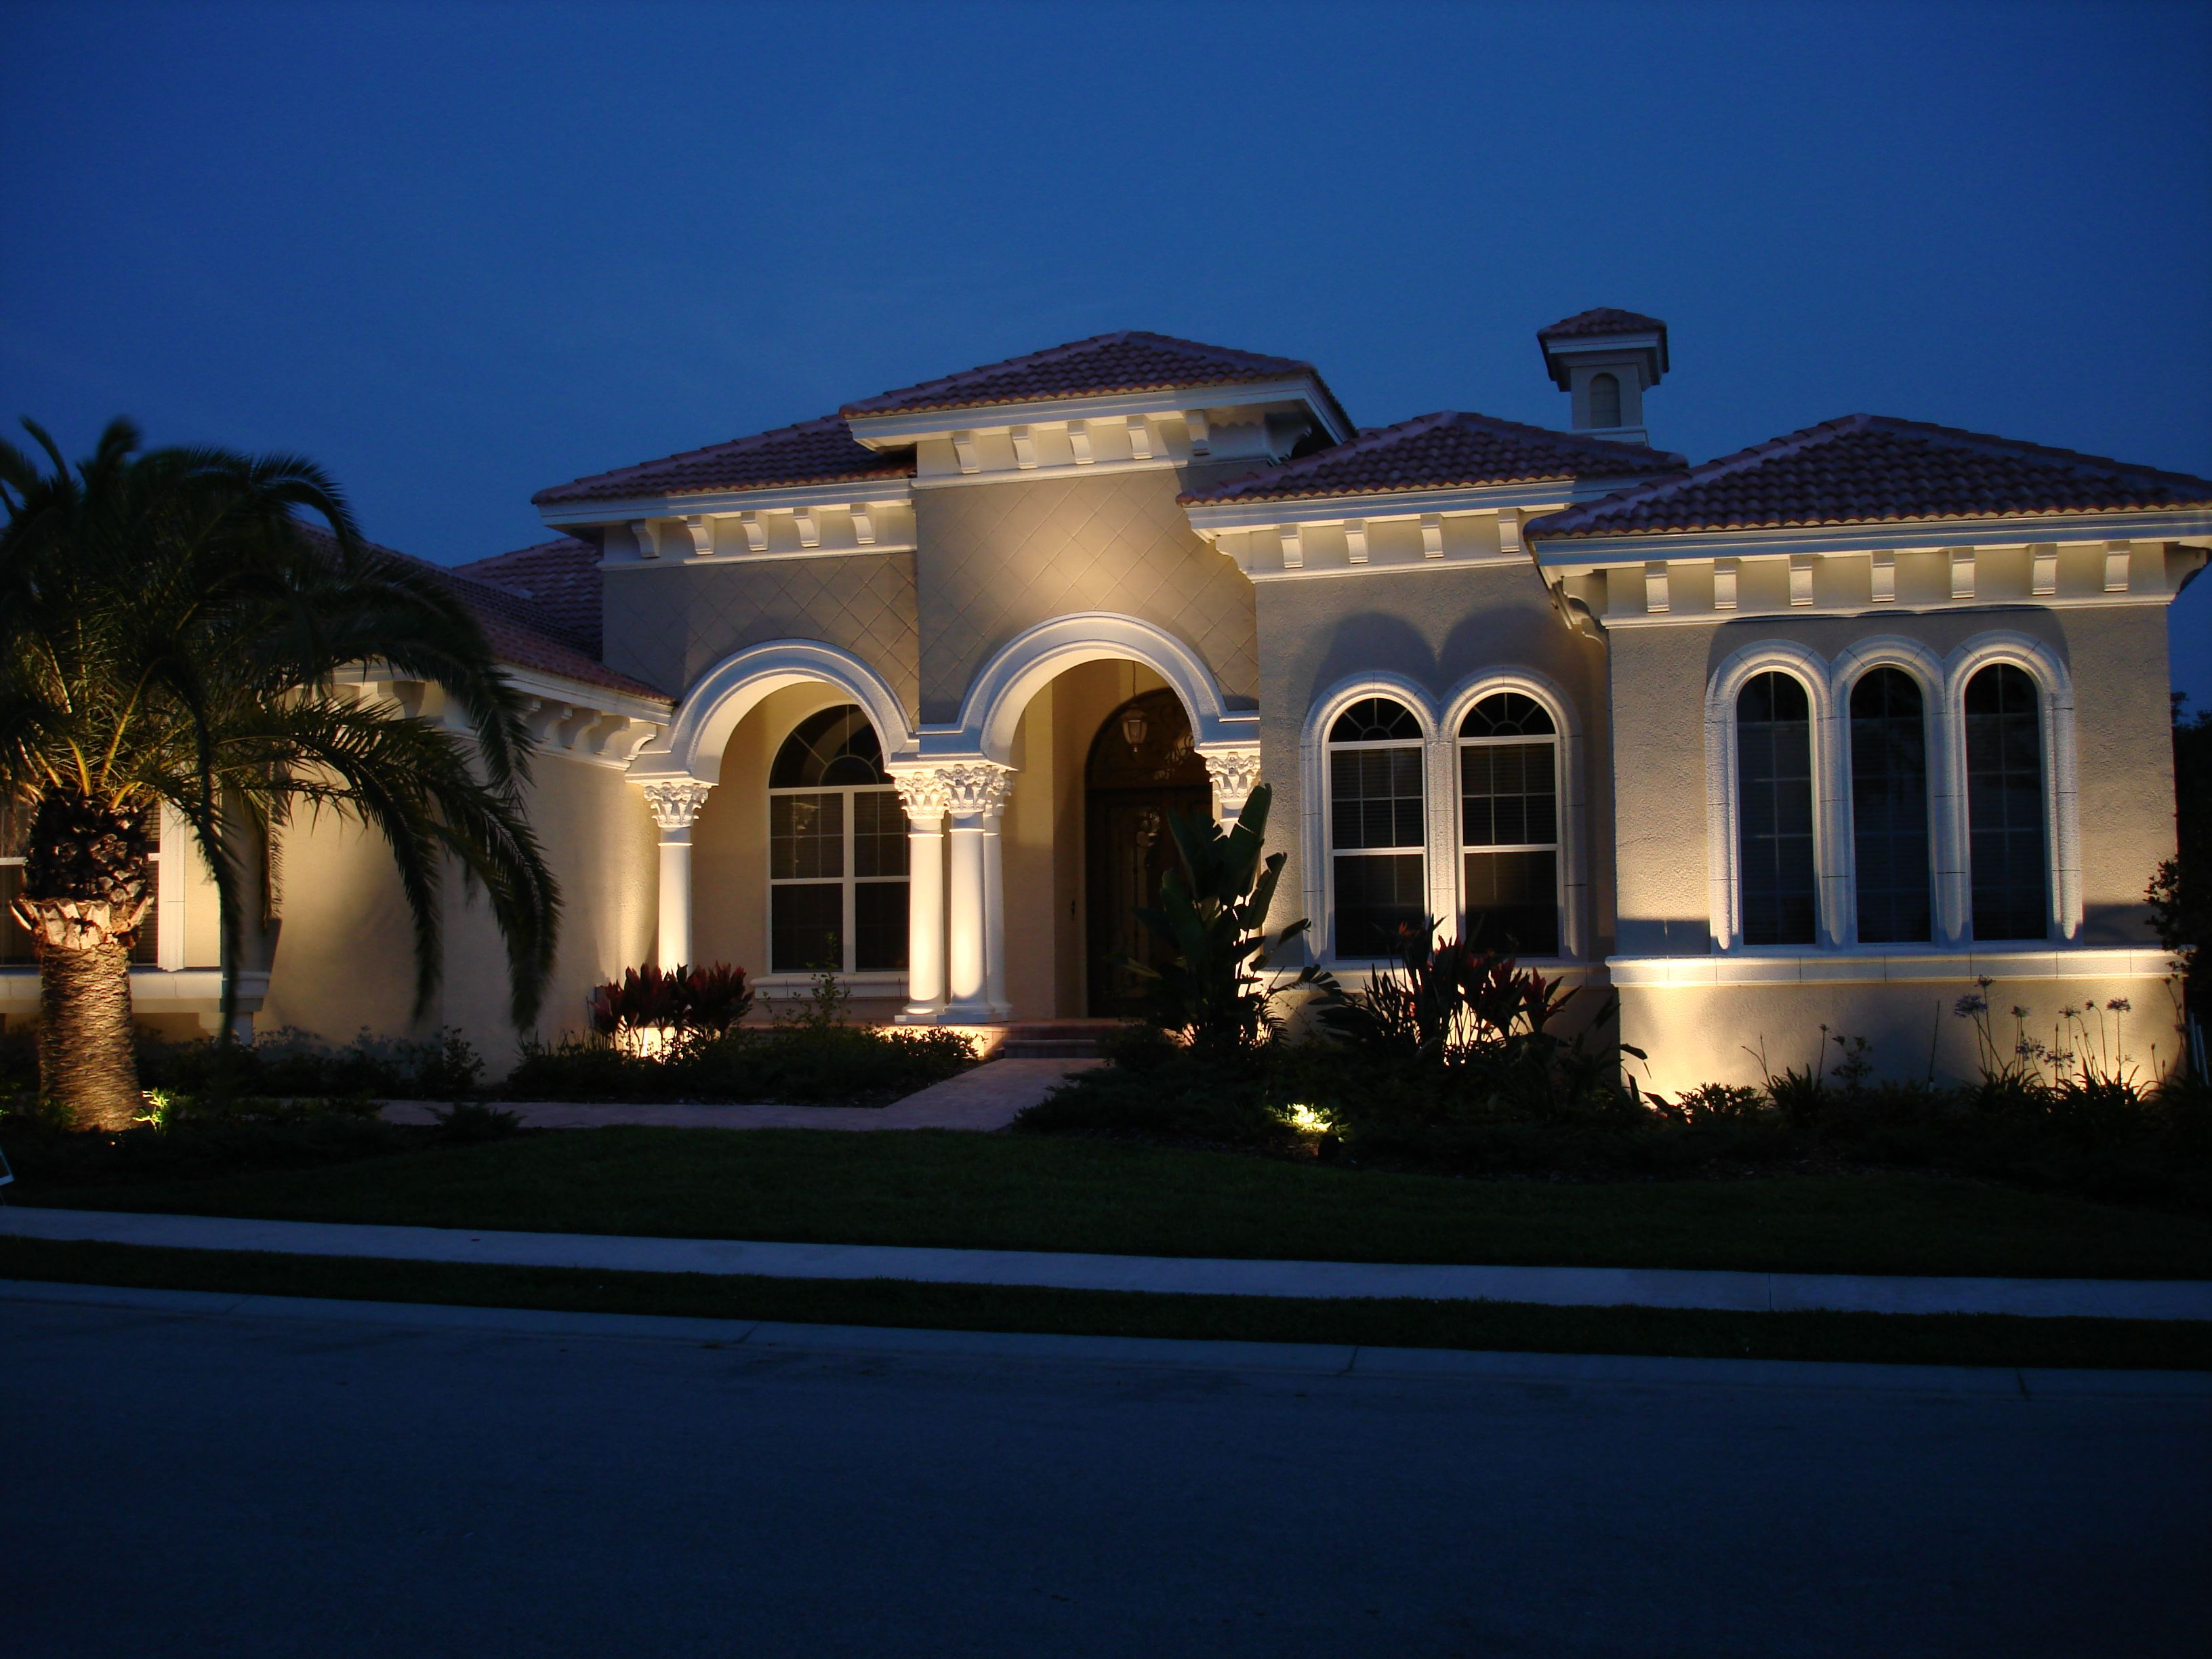 lighting outdoor lighting tampa nighttime lighting design - Landscape Lighting Design Ideas